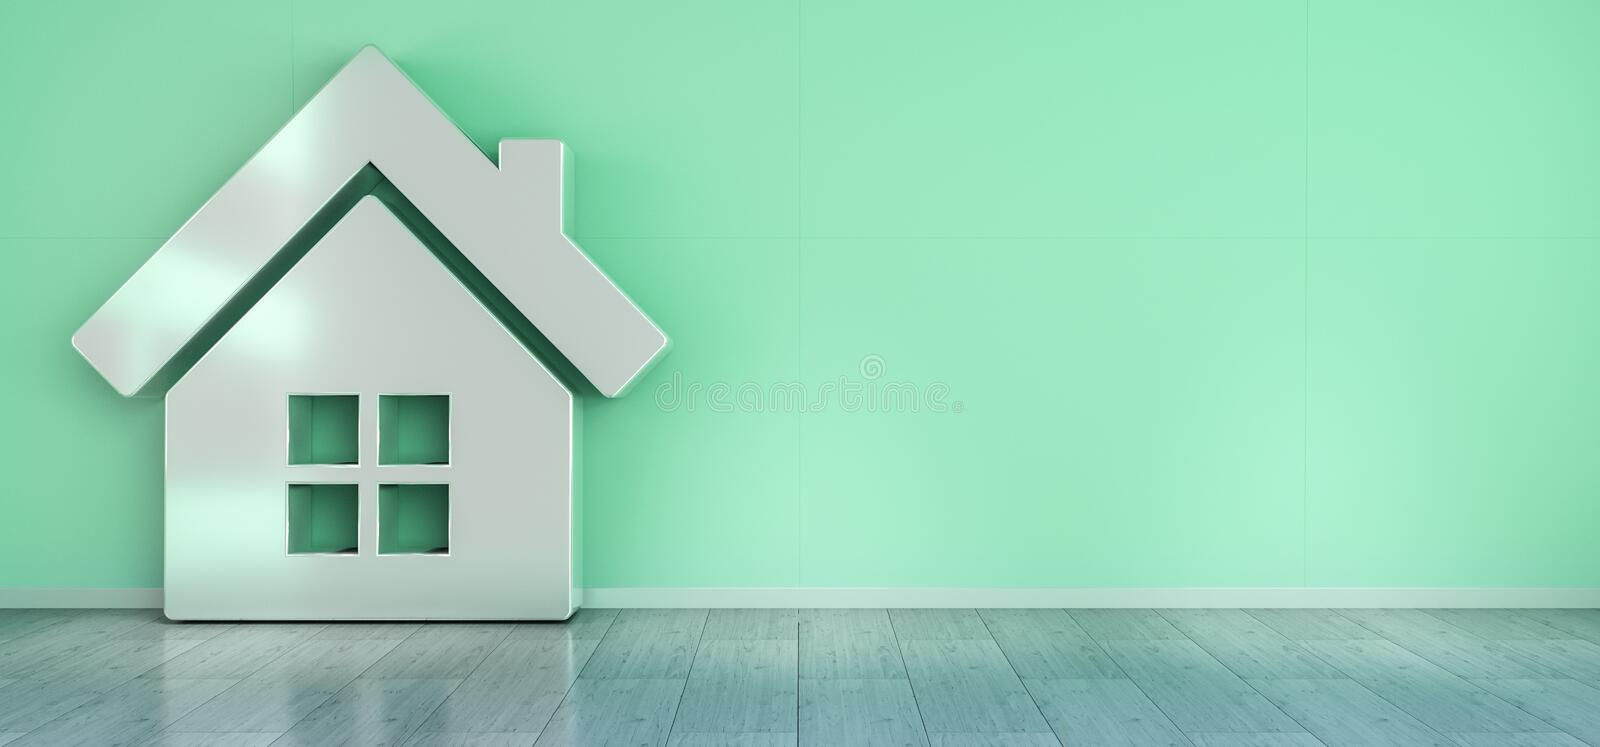 Smarthome icon in interior 3D rendering vector illustration